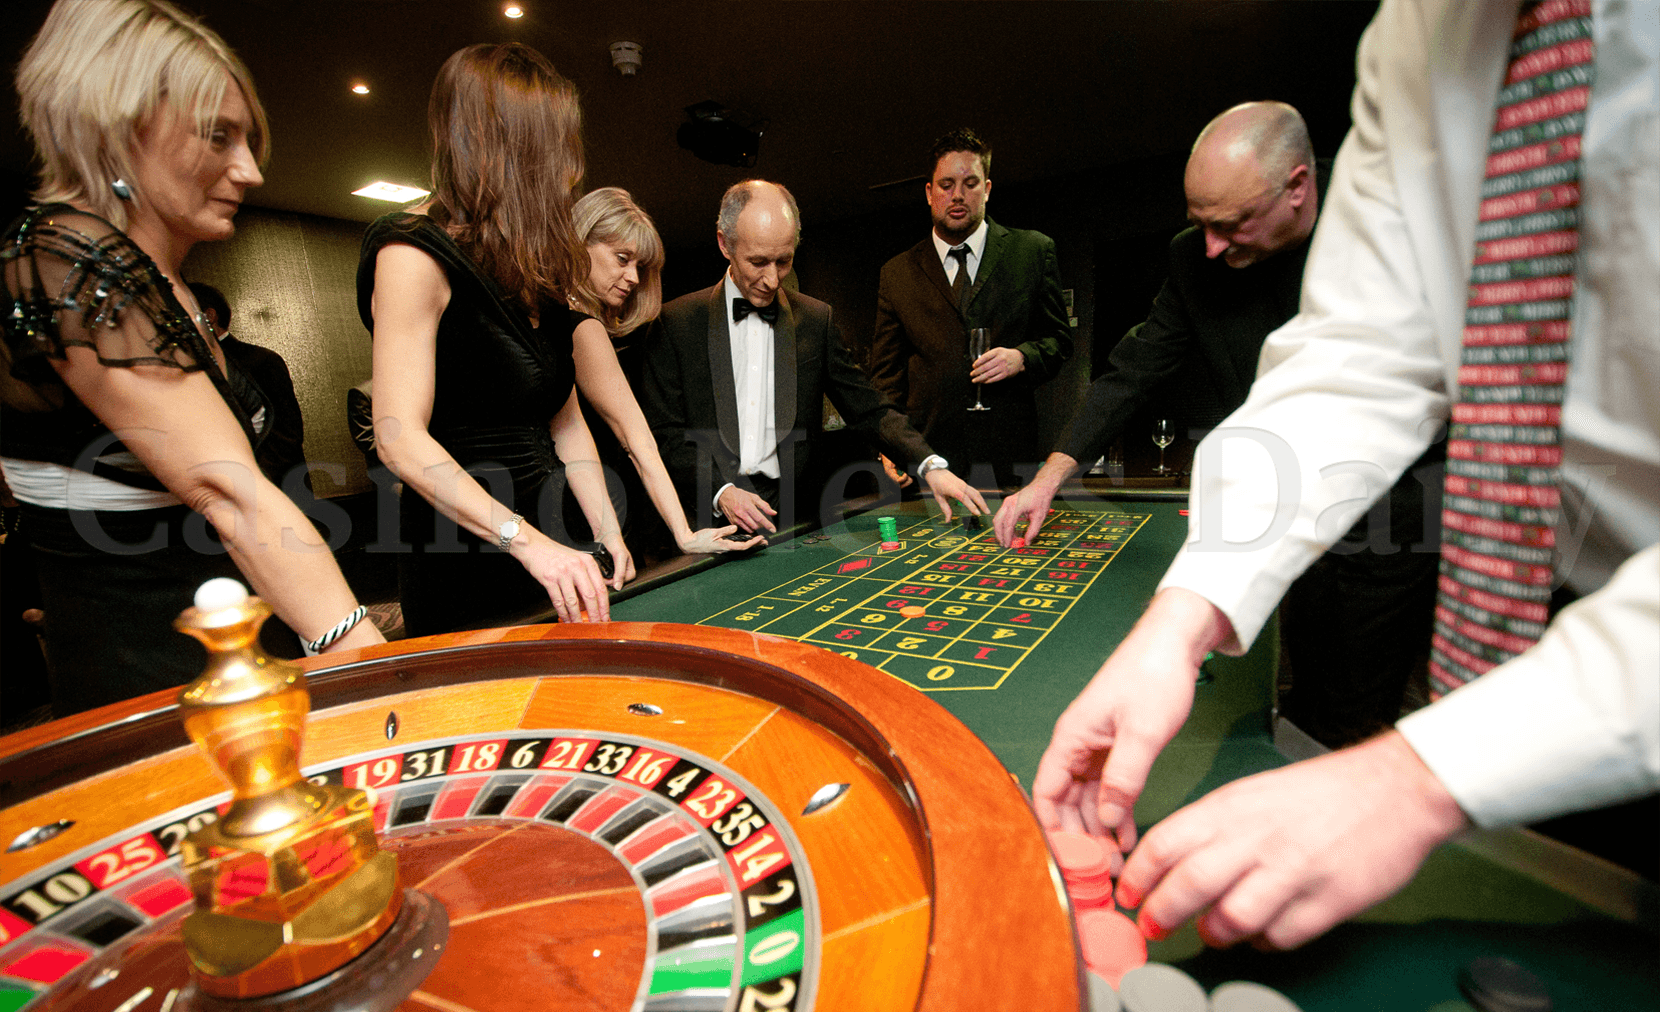 Beating the Roulette Odds the Old Way